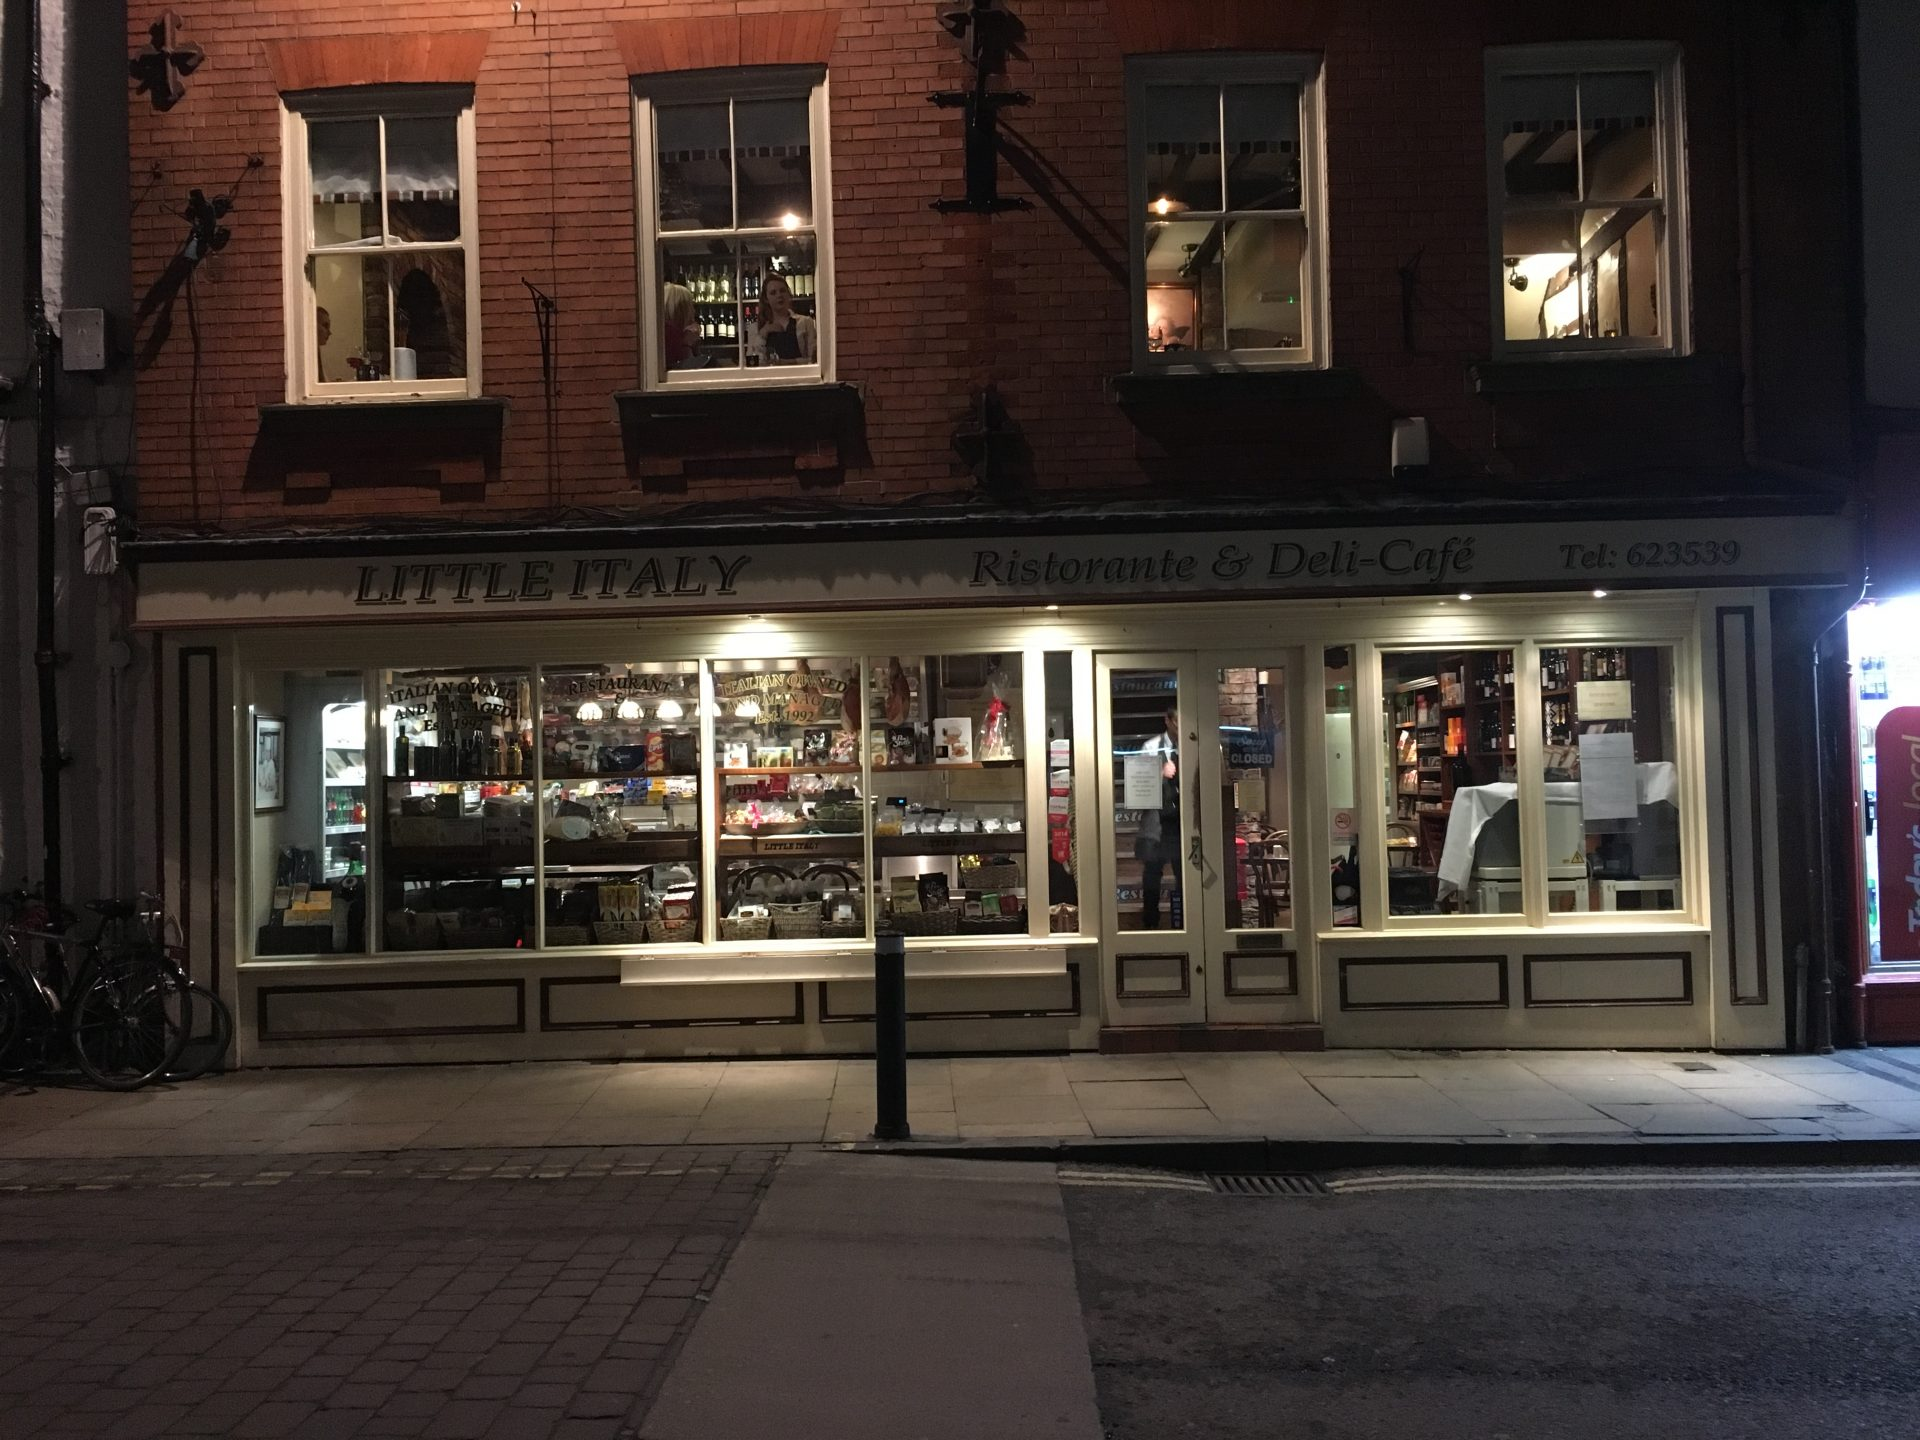 Little Italy Italian Restaurant, York